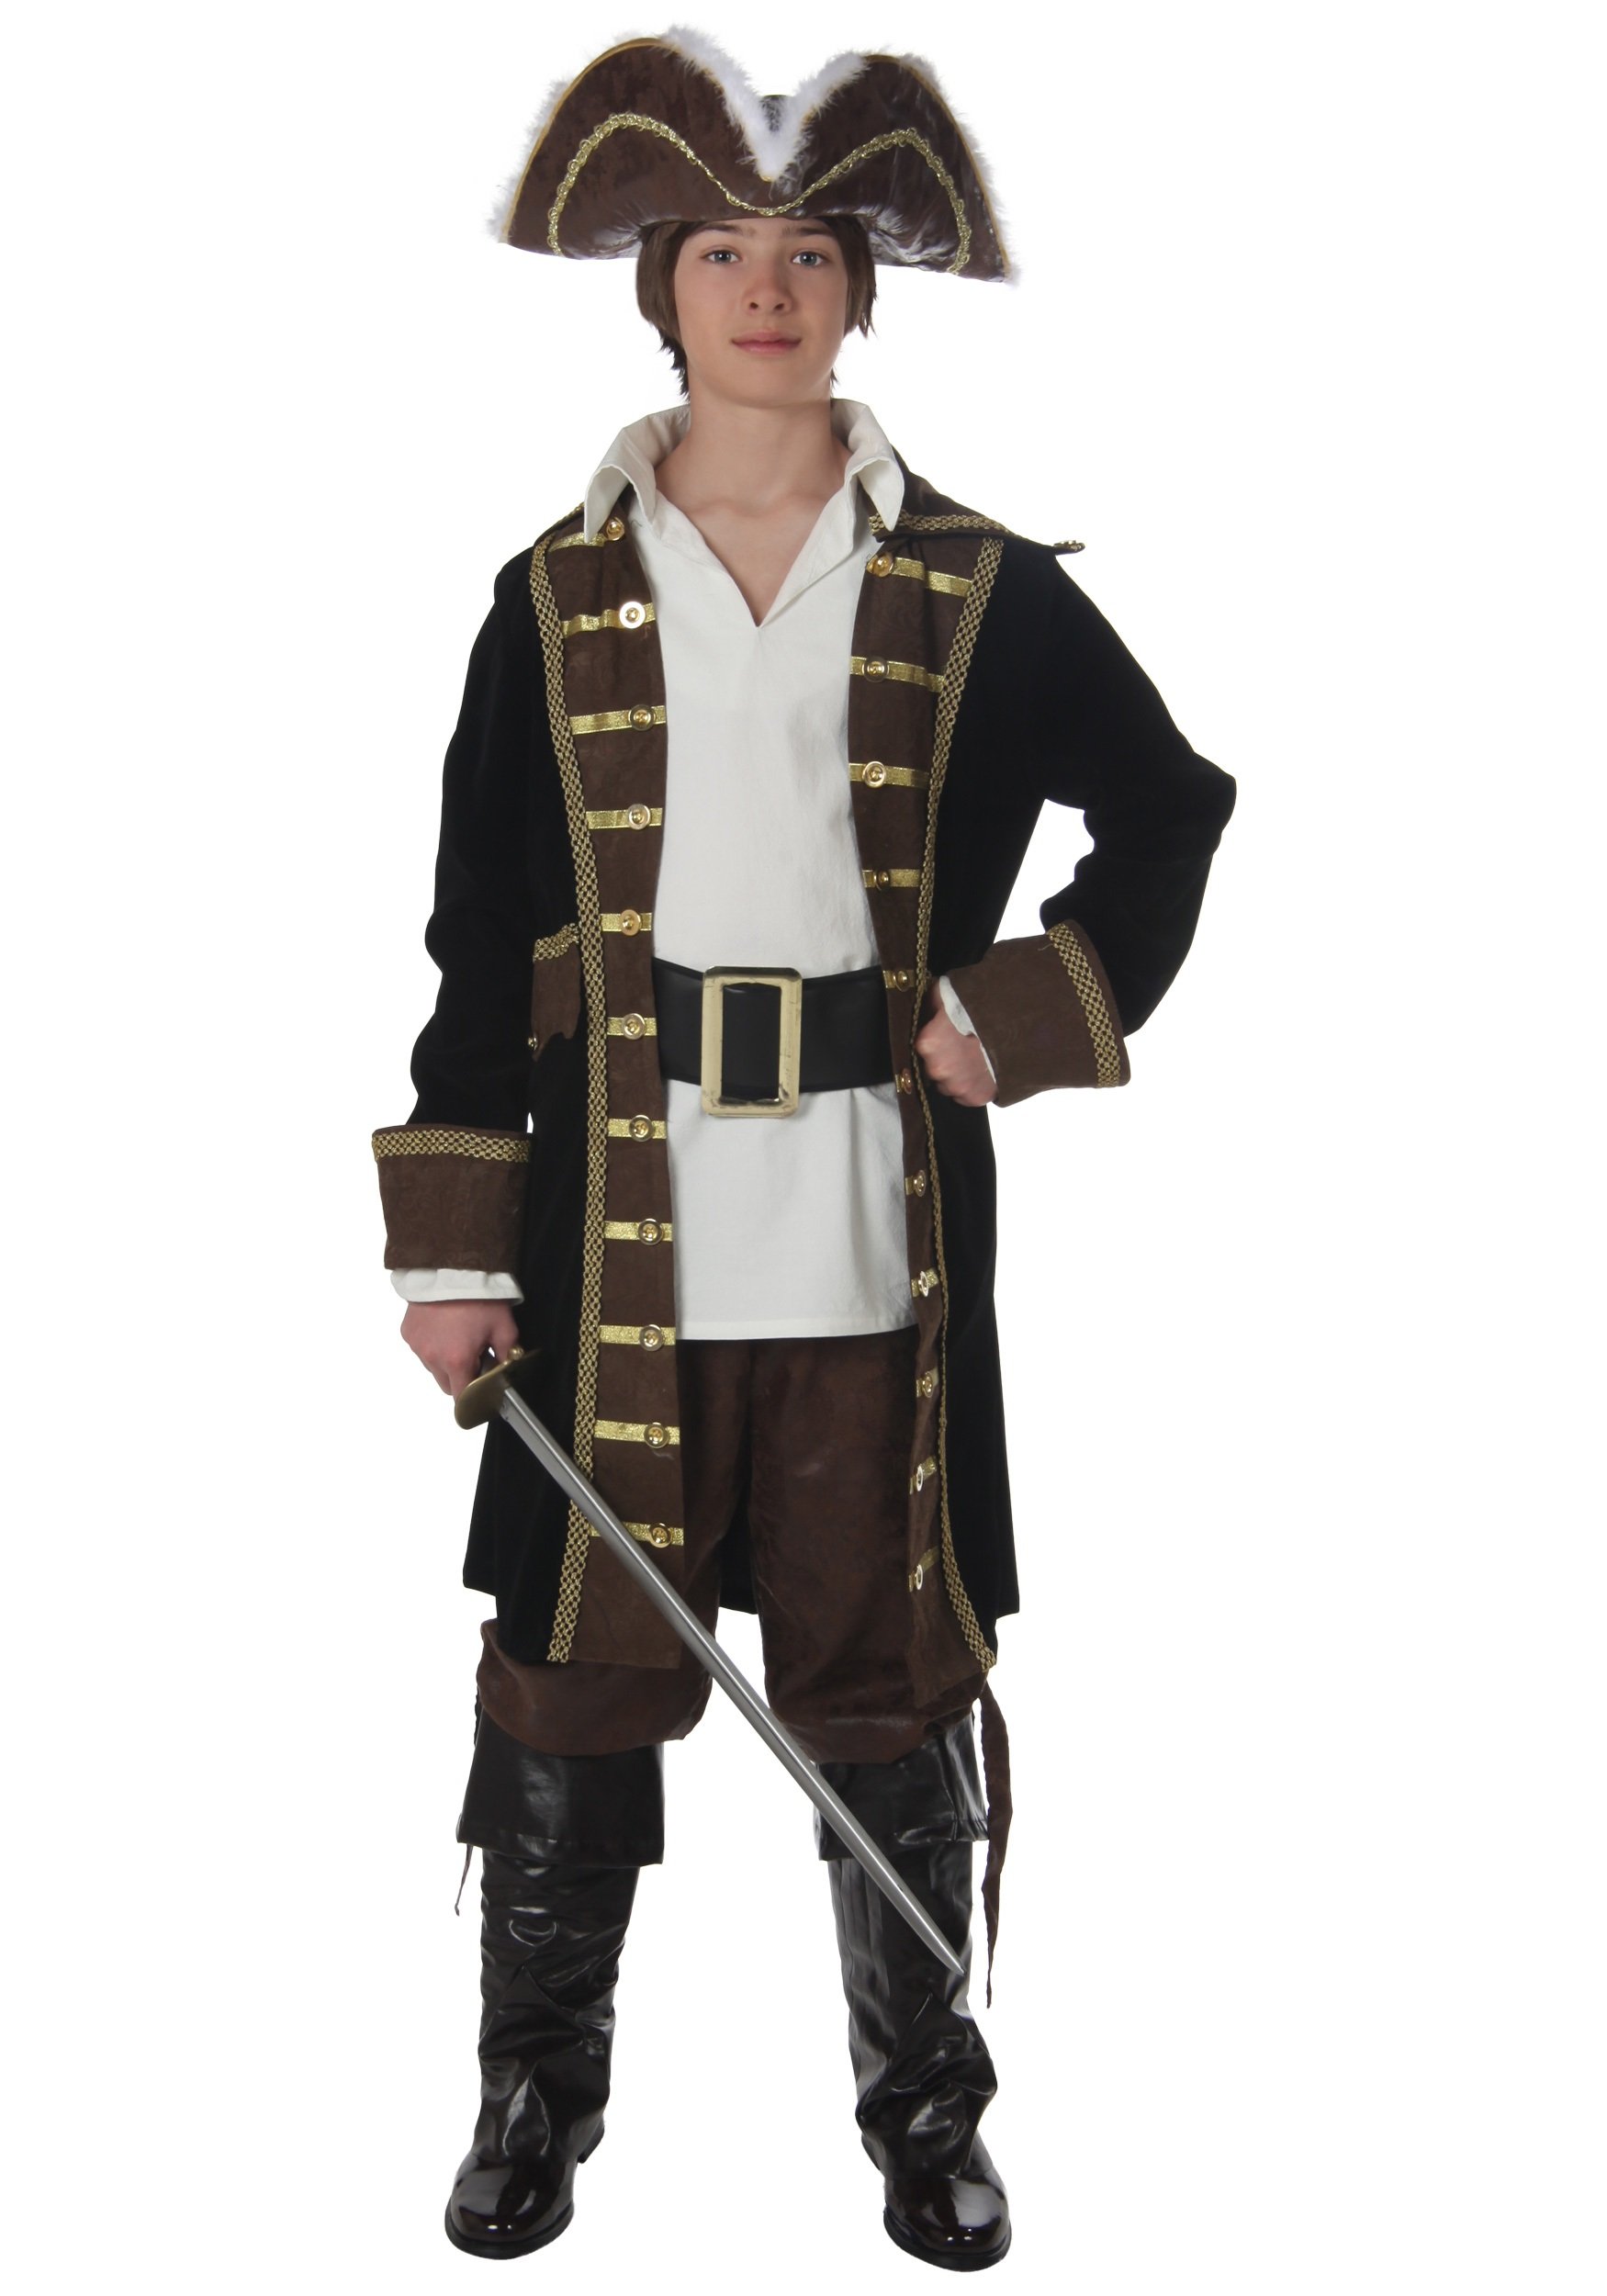 Realistic_Pirate_Costume_for_Boys